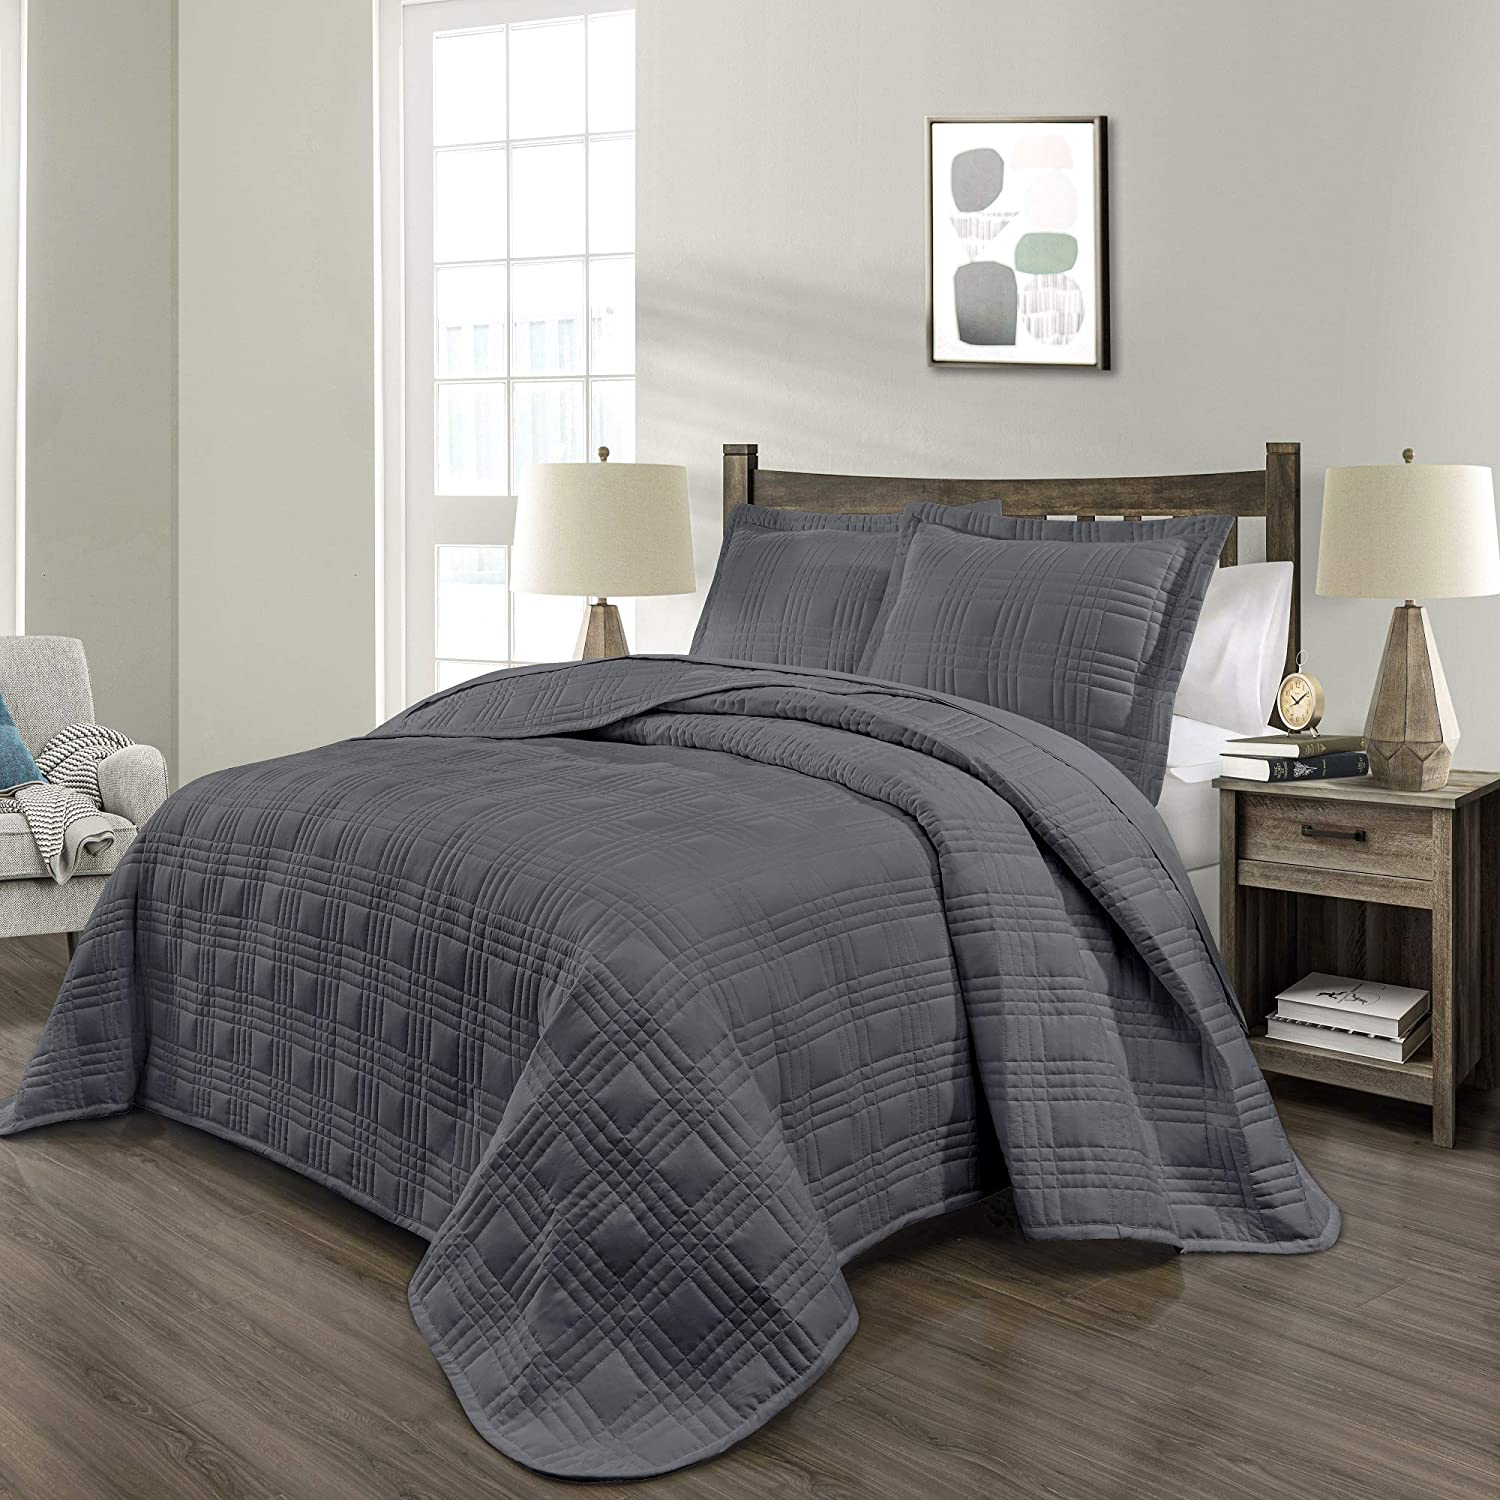 PHRIXUS Quilt Fees free Bedspread Coverlet Lowest price challenge Set Lightweight Ultra Soft Fill